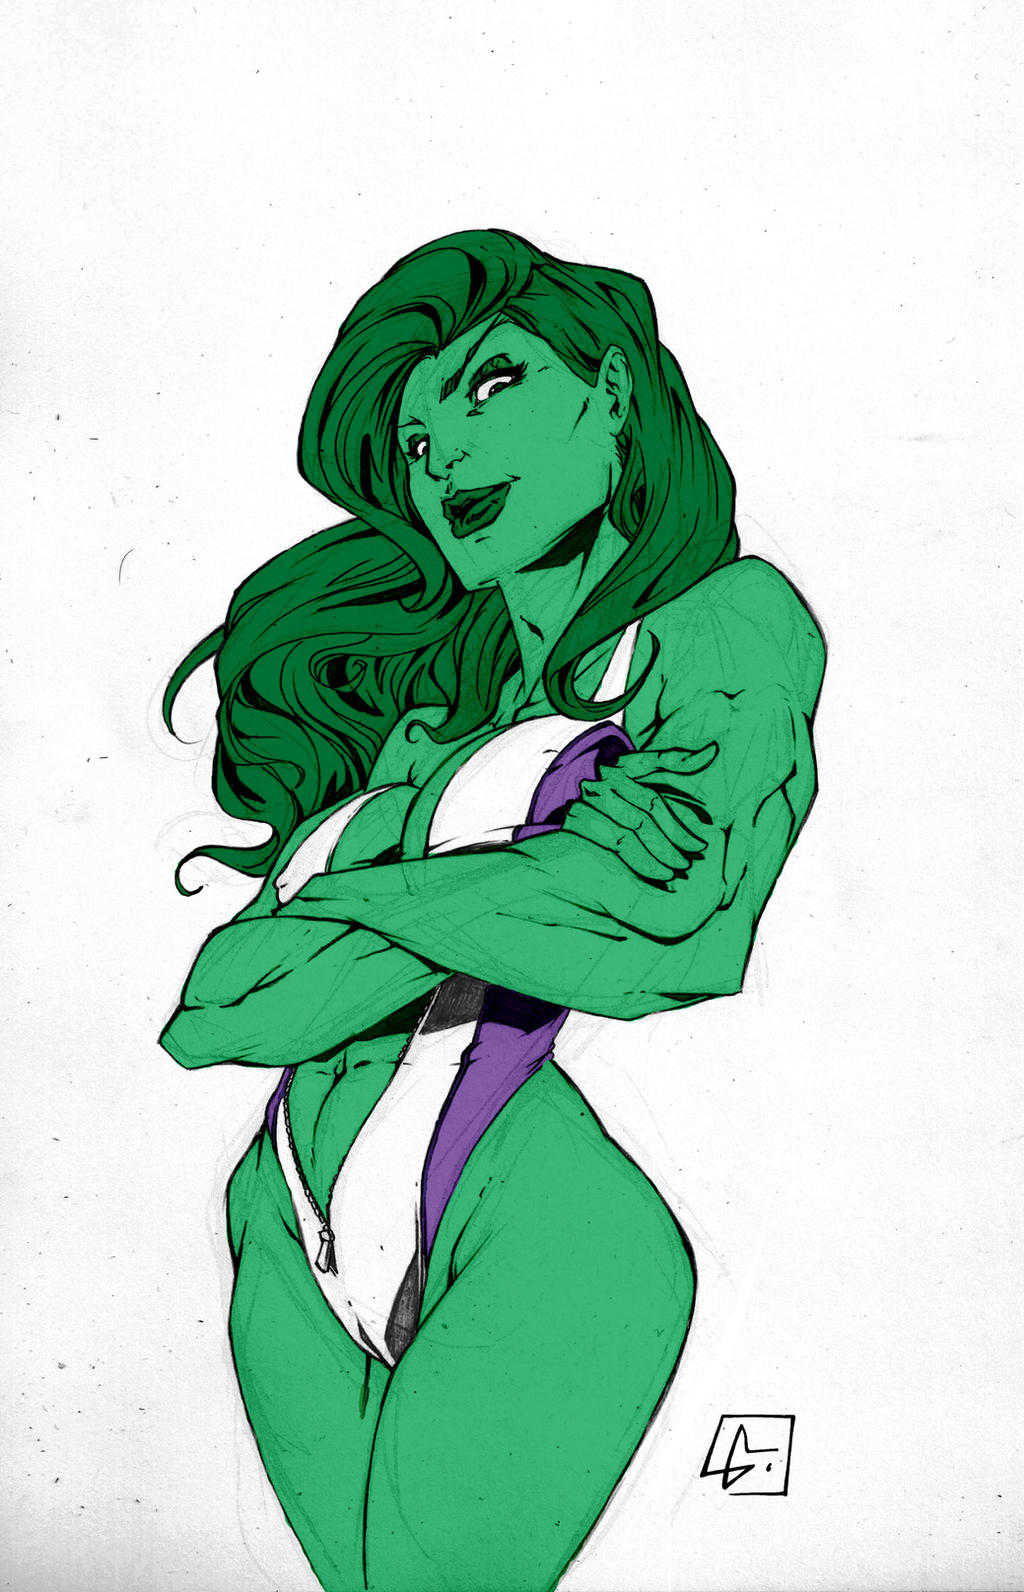 Another She Hulk By Marvelmania by Kenkira